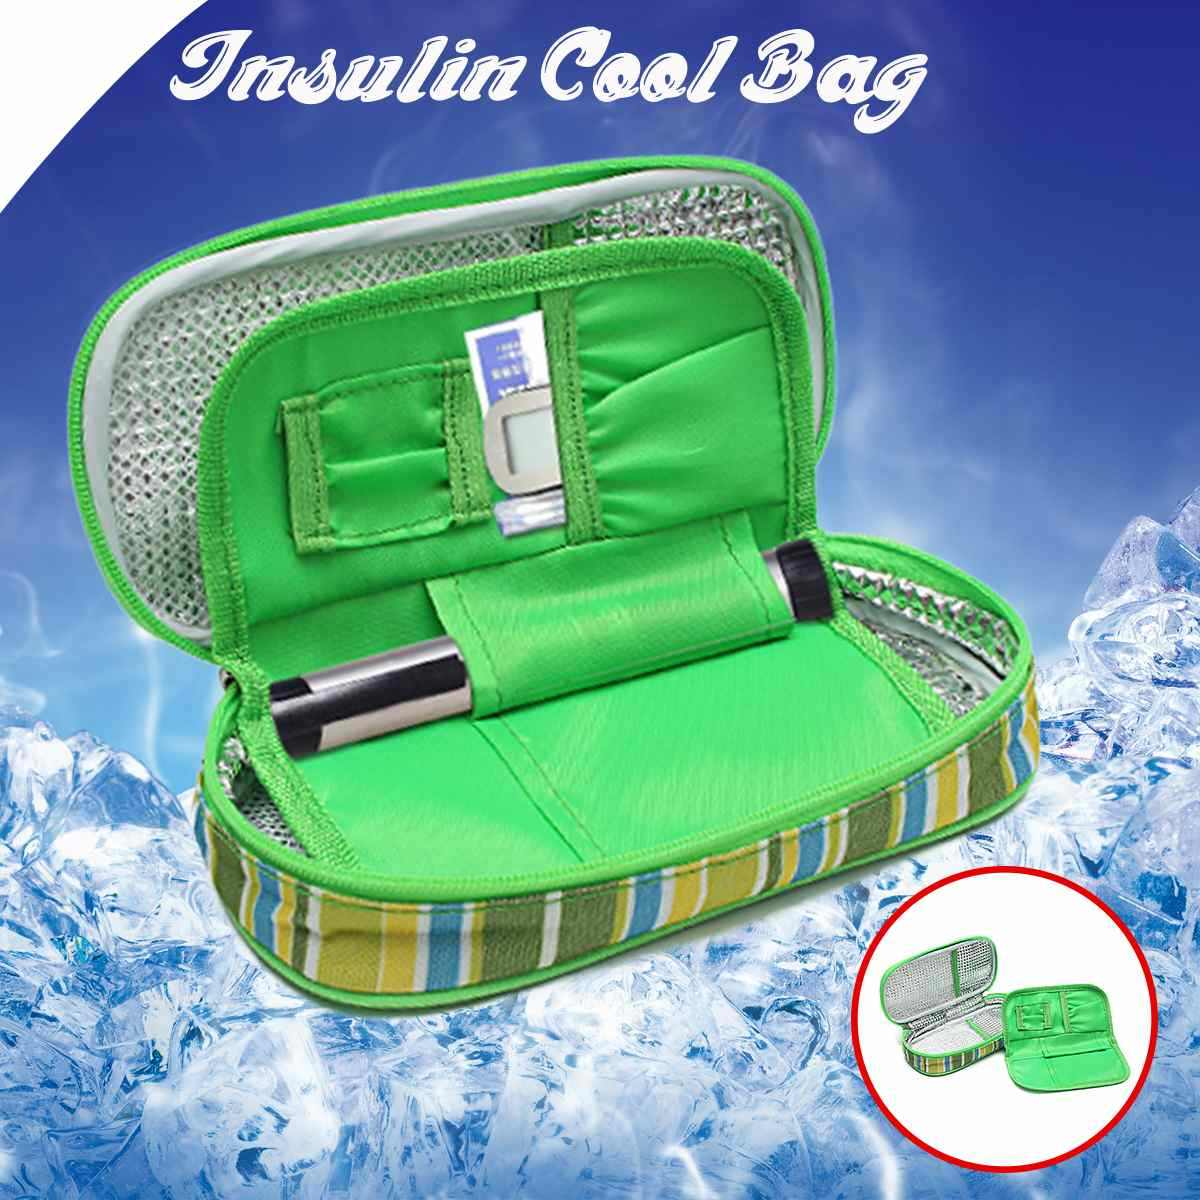 2-Layer Portable Medicine Diabetic Insulin Cooling Pouch Cooler Ice Pack Bag Travel Case